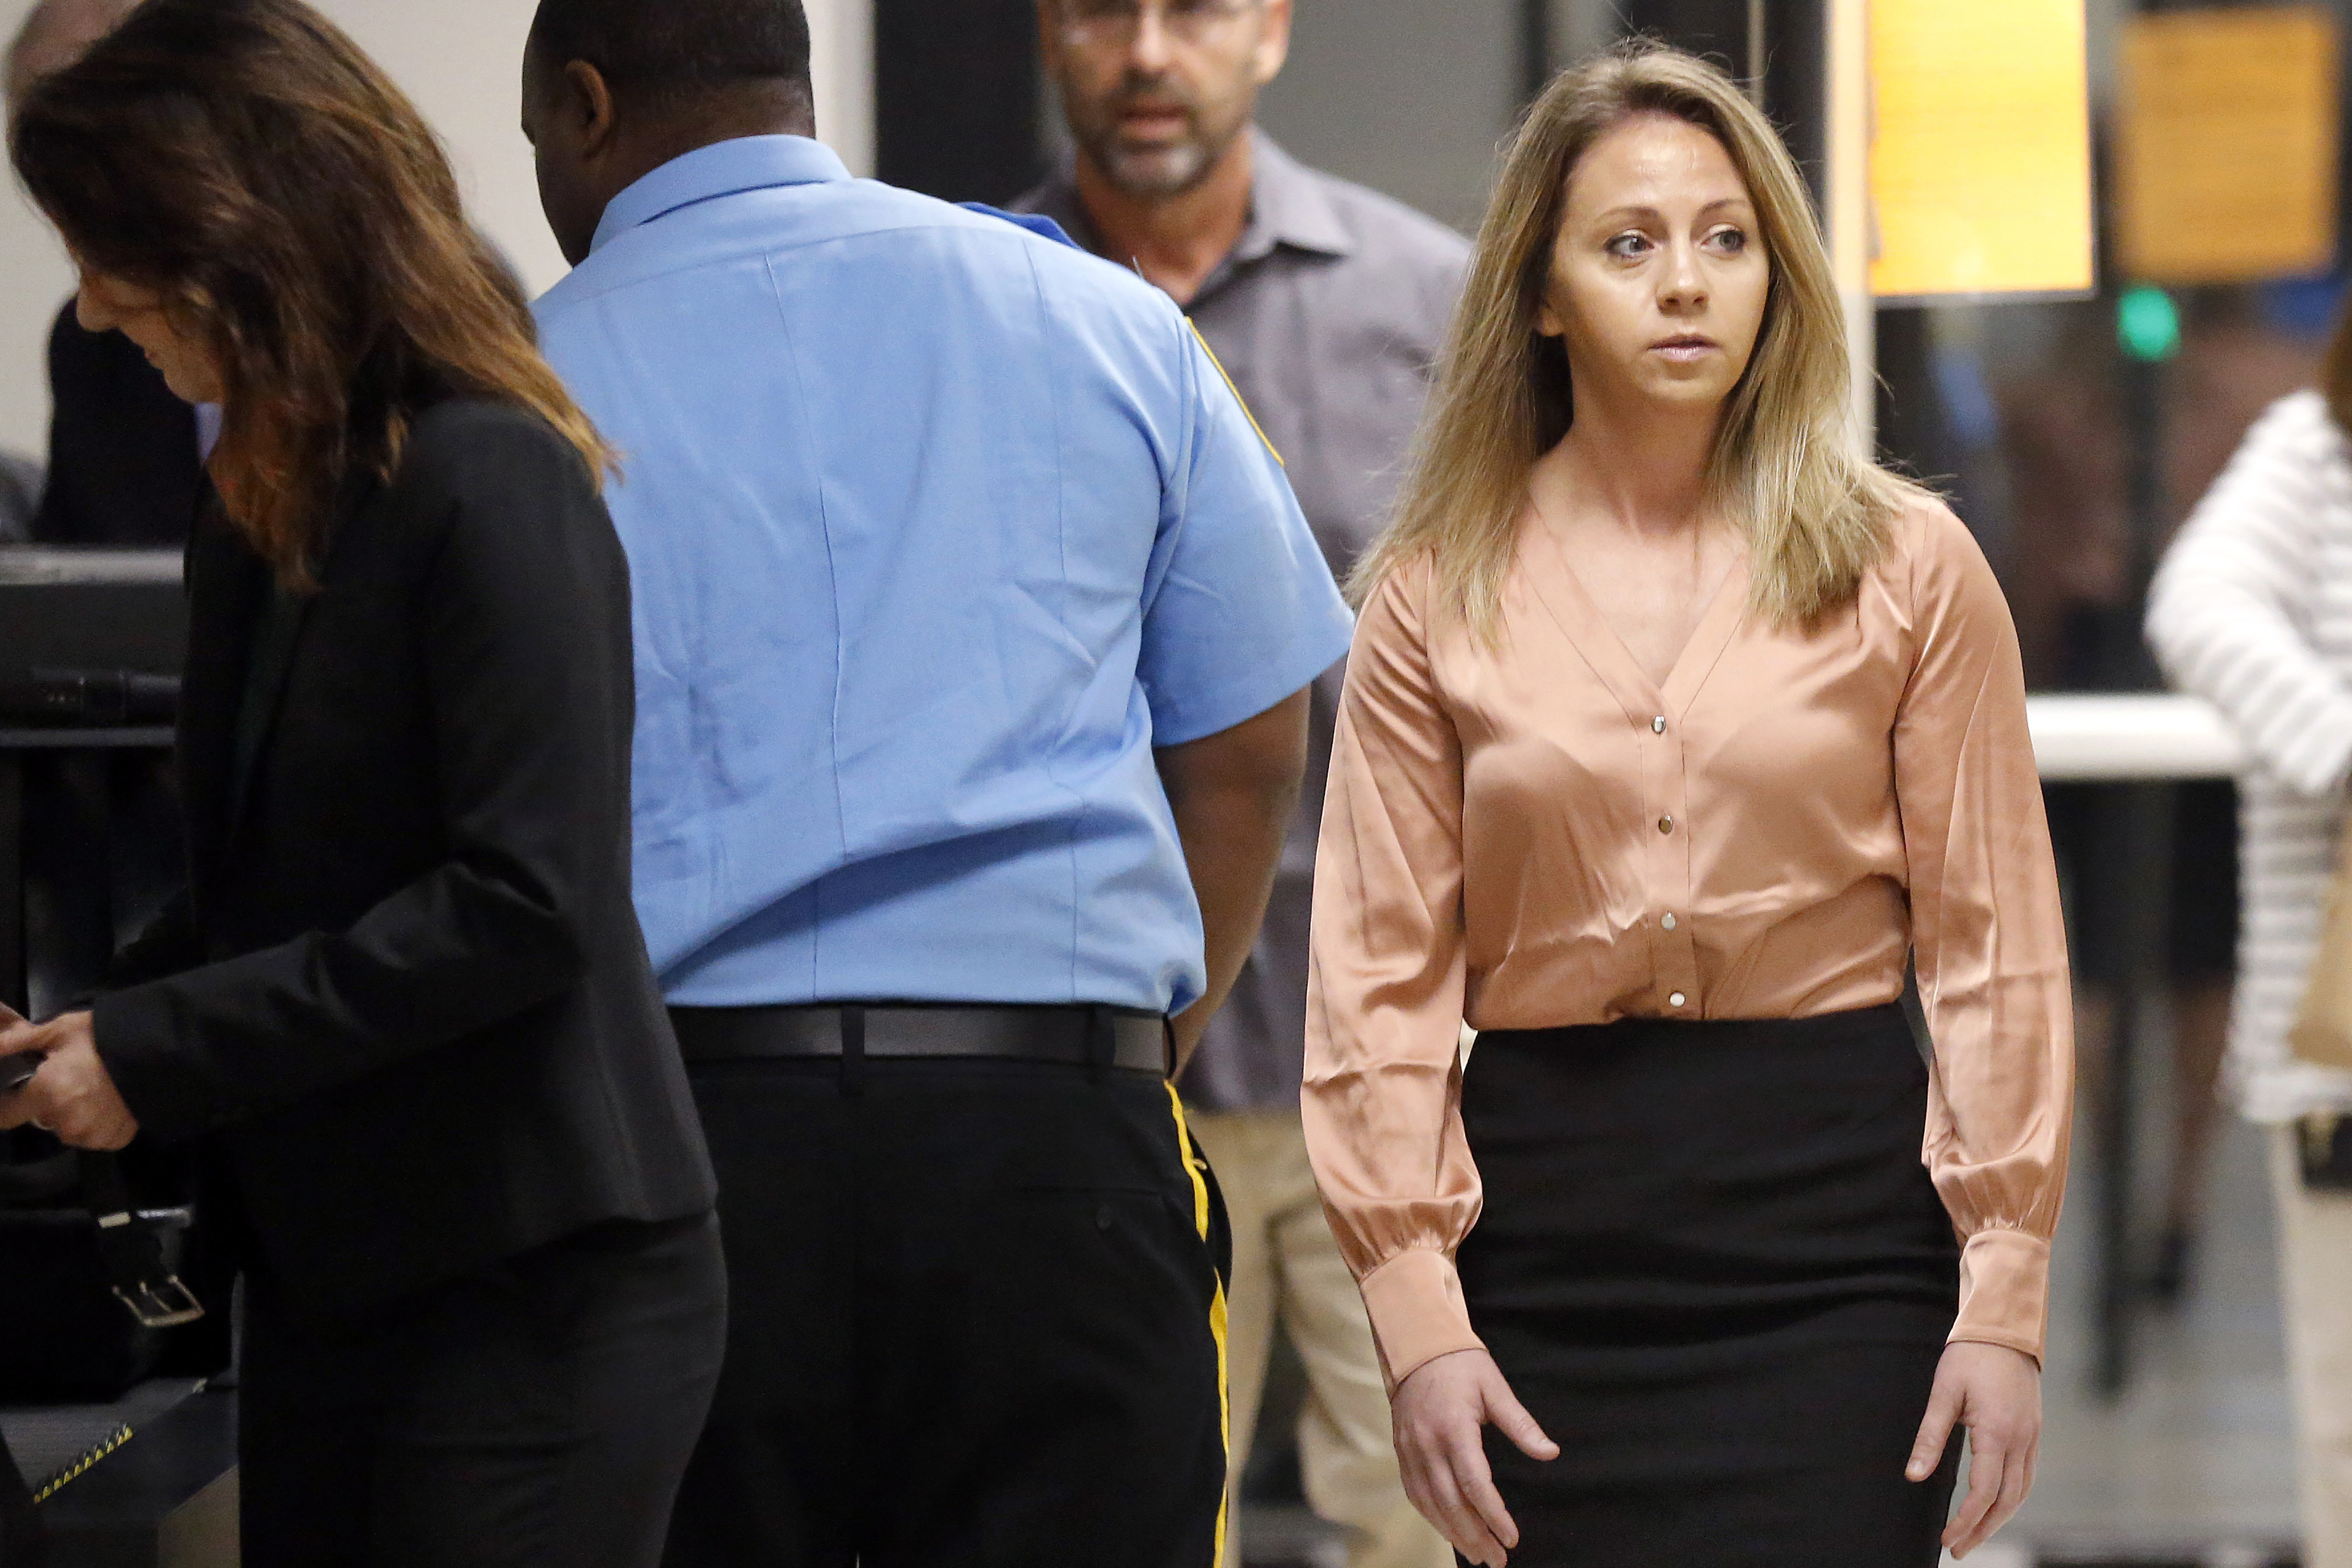 The Latest: Ex-lover denies rendezvous planned with Guyger